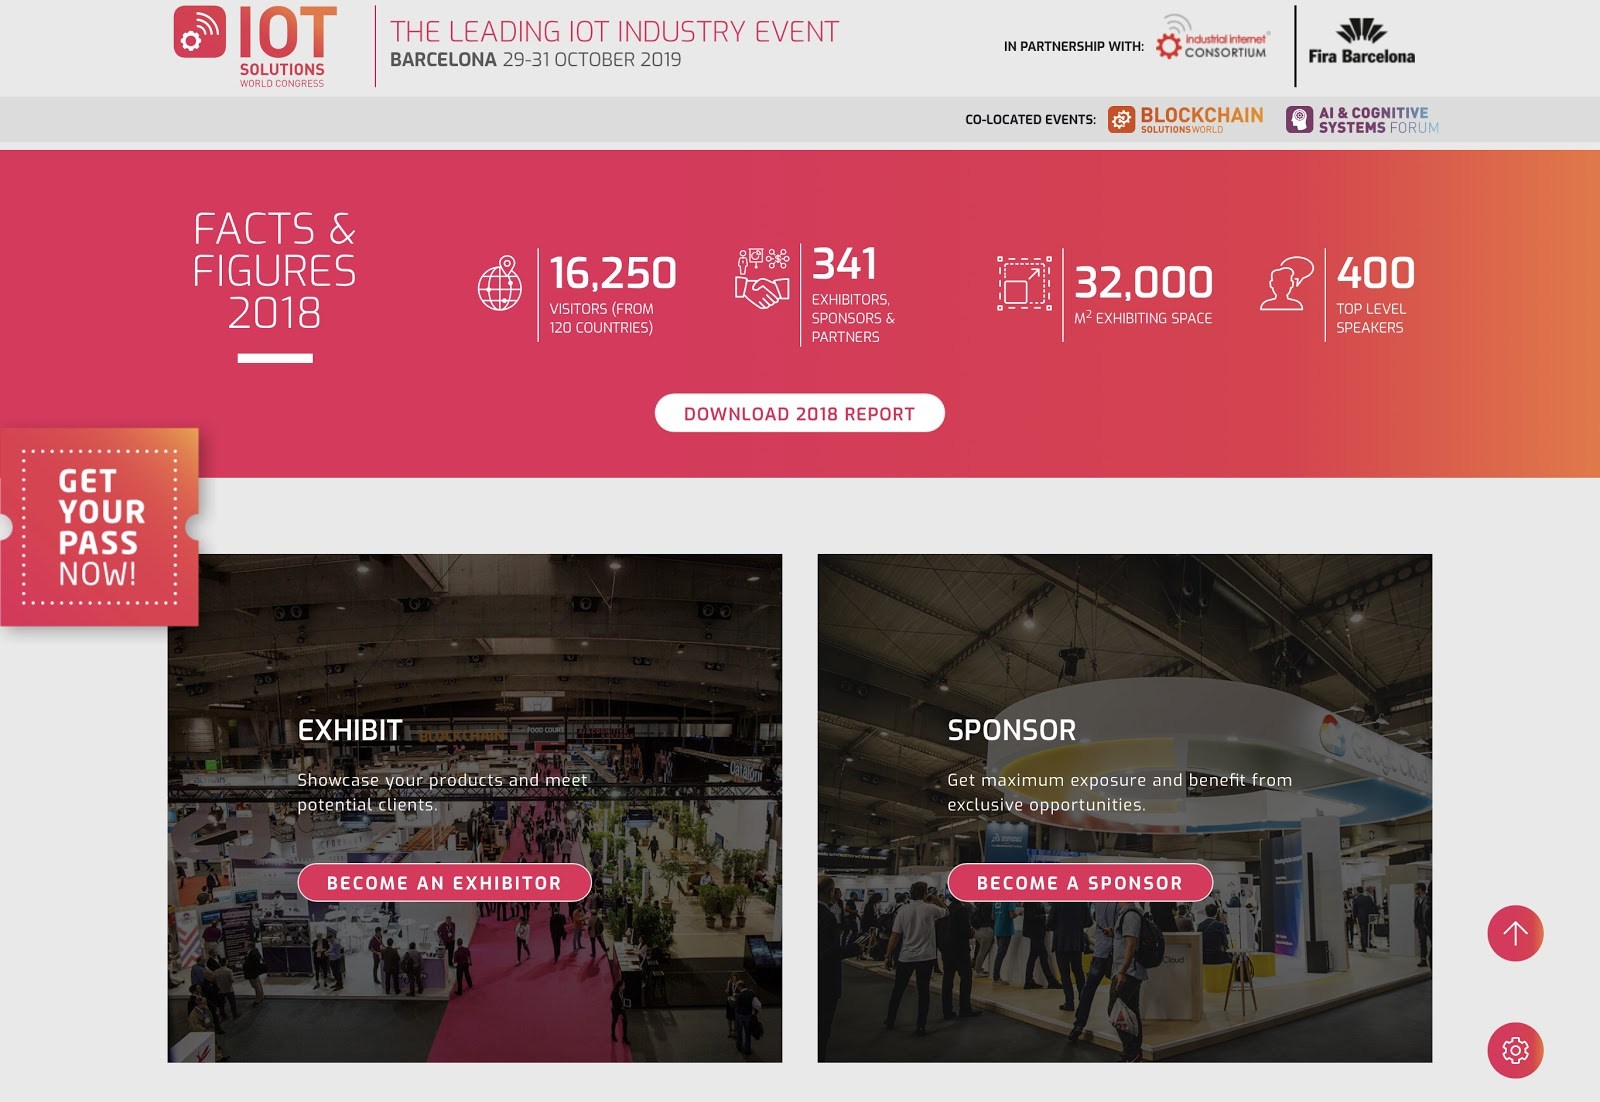 IoT Solutions world